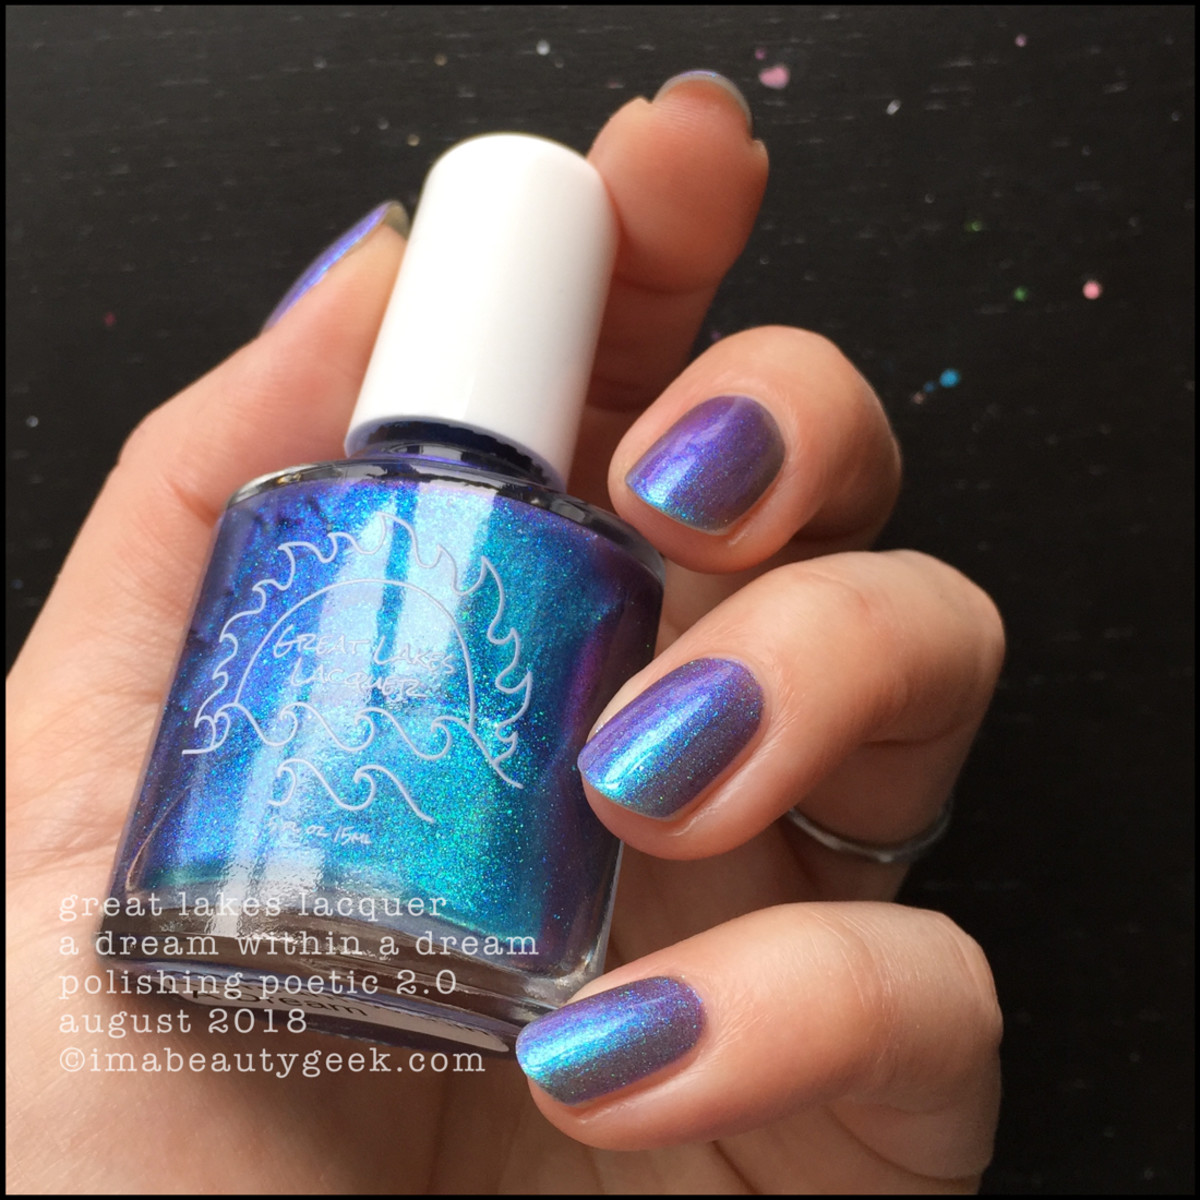 Great Lakes Lacquer A Dream Within A Dream 2 _ Great Lakes Lacquer Polishing Poetic 2.0 Swatches Review